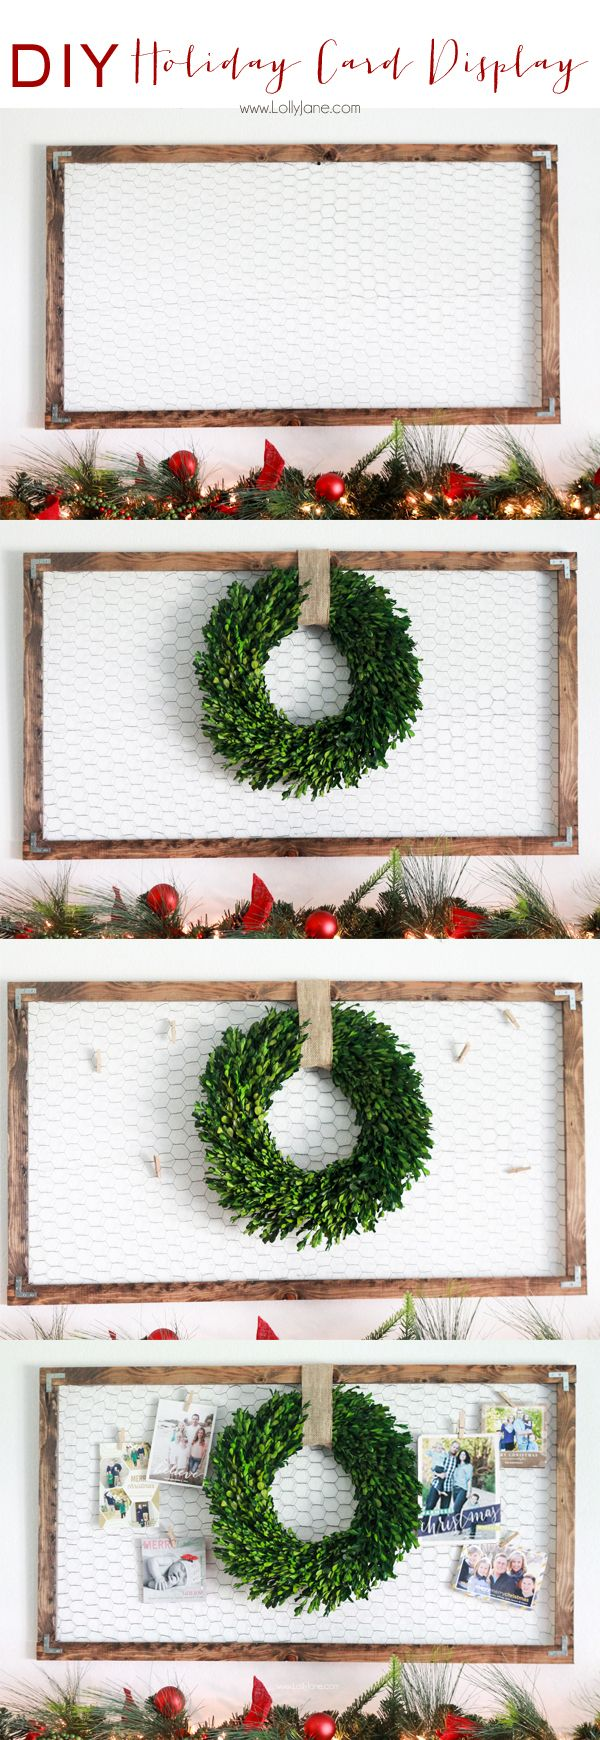 DIY Christmas & Holiday Card Display